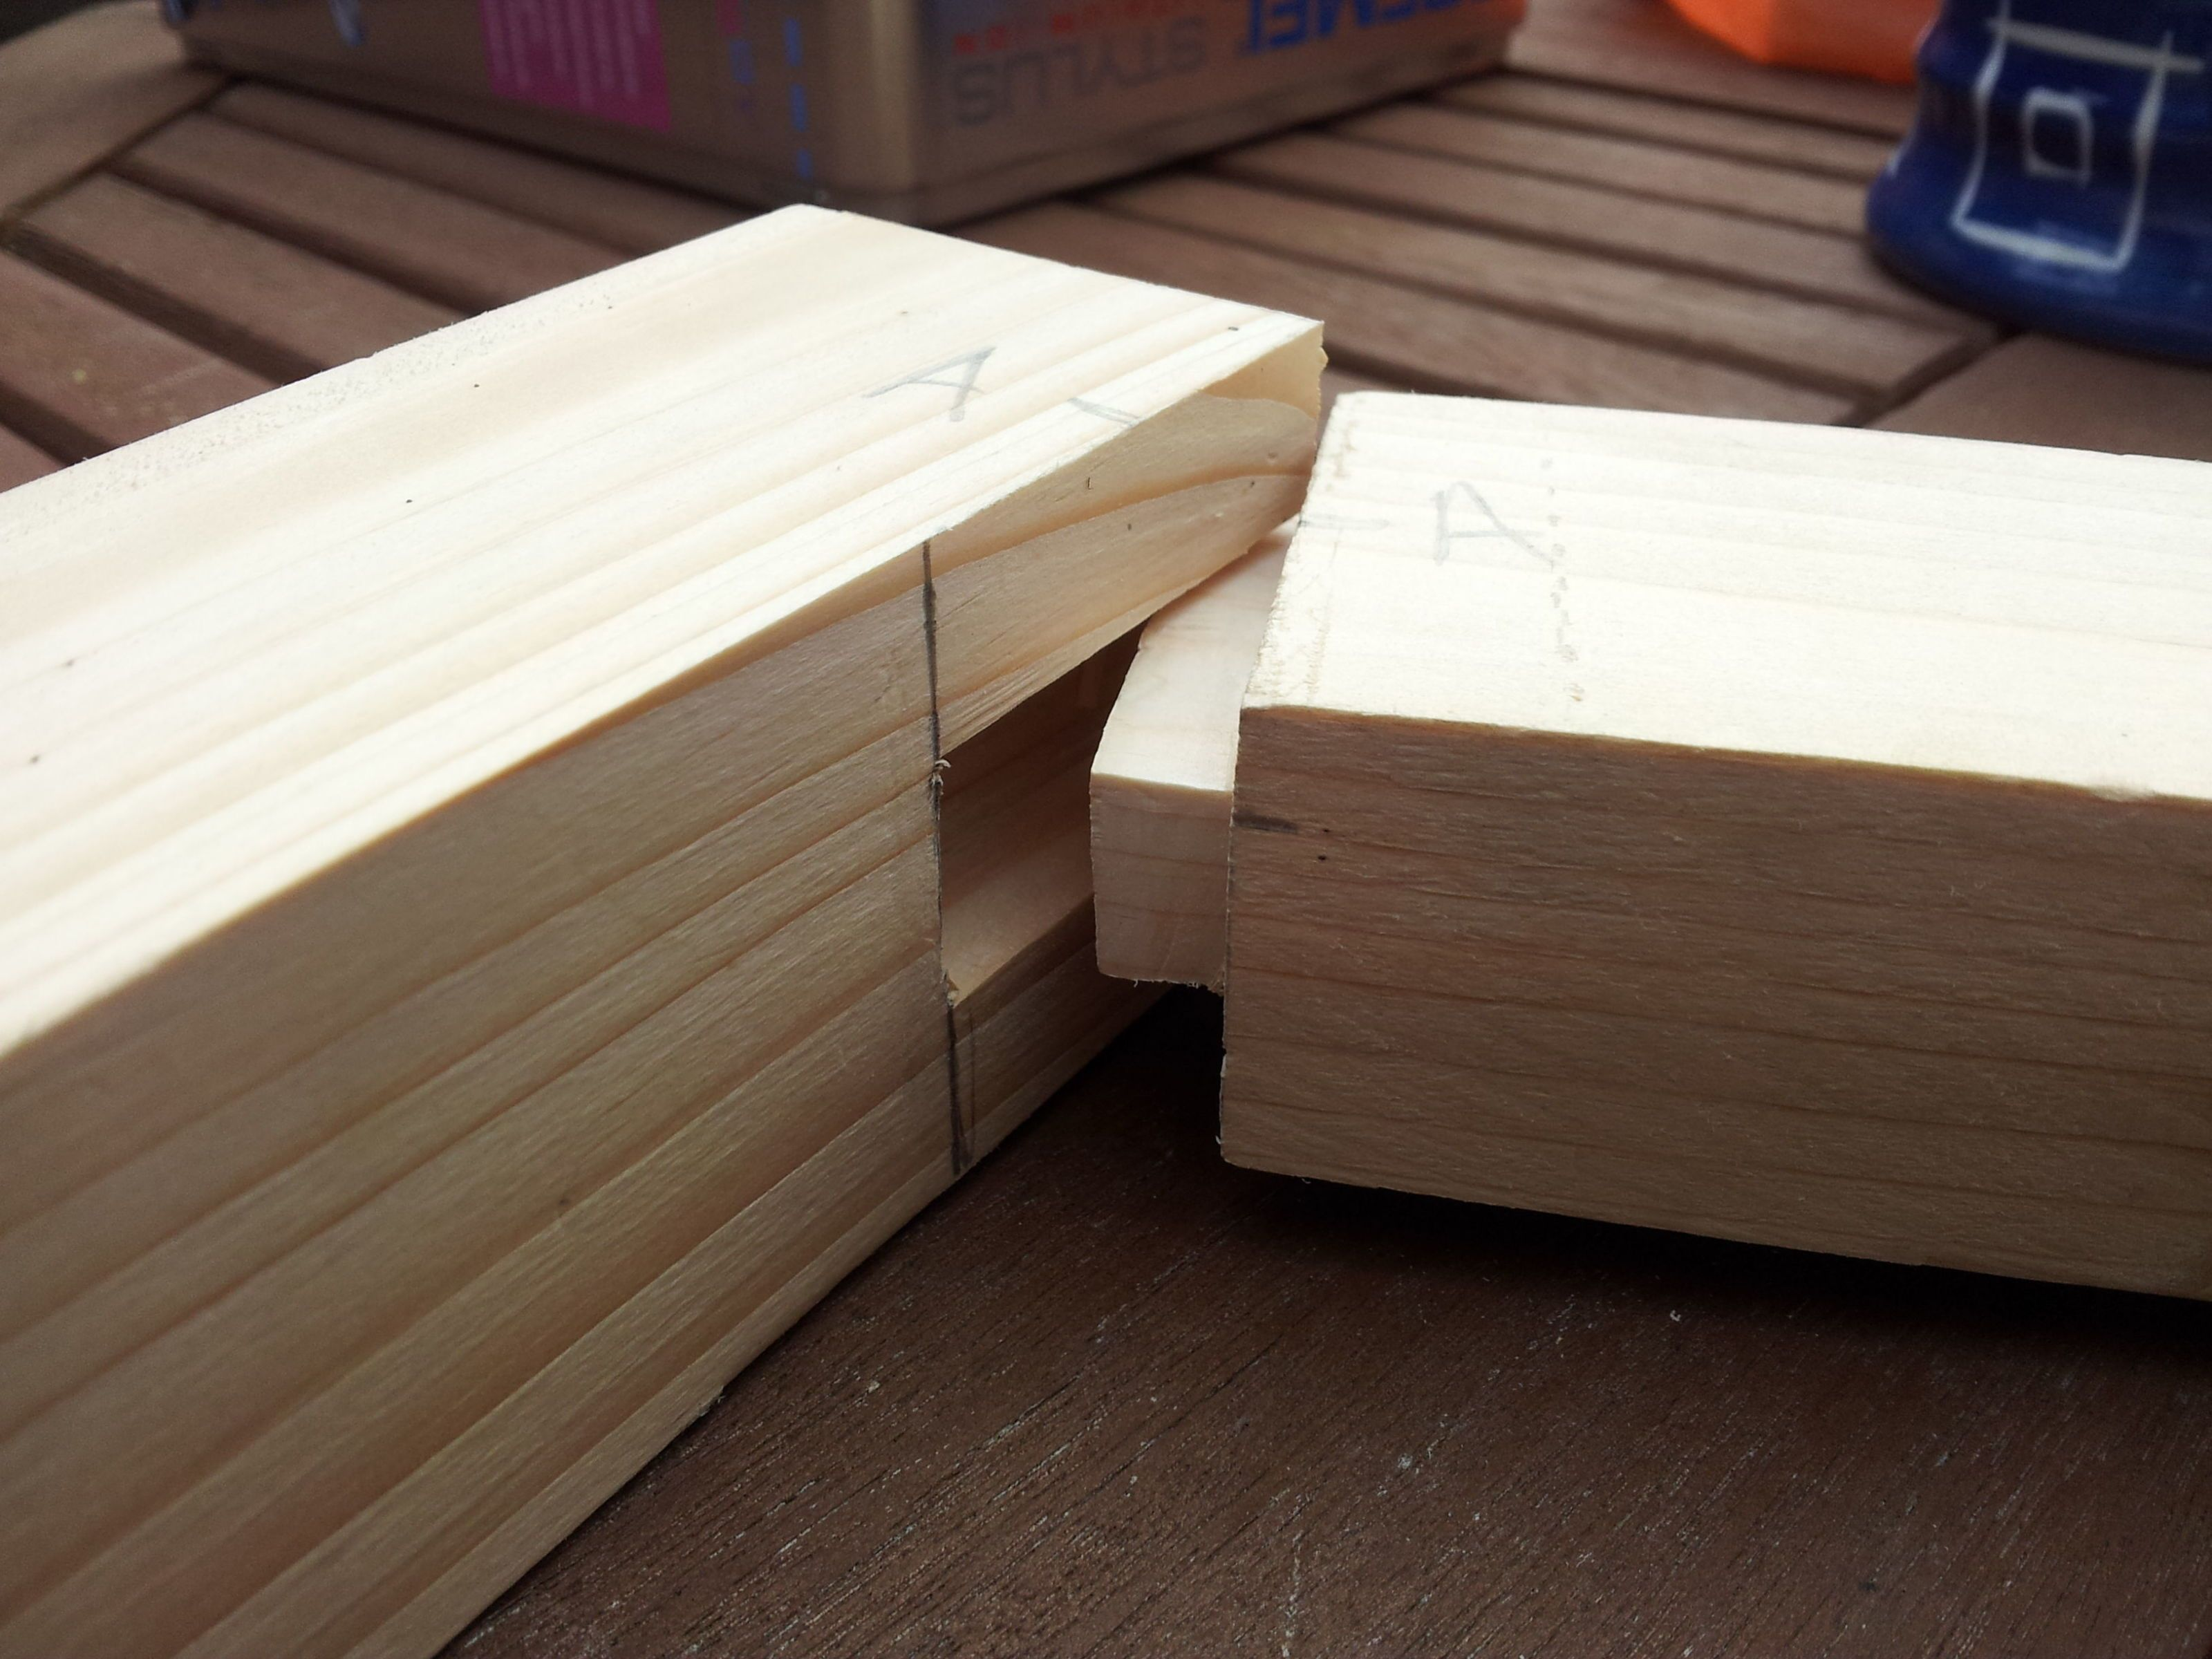 Use the Mortise and Tenon Woodworking Joint for Building Rock Solid Furniture